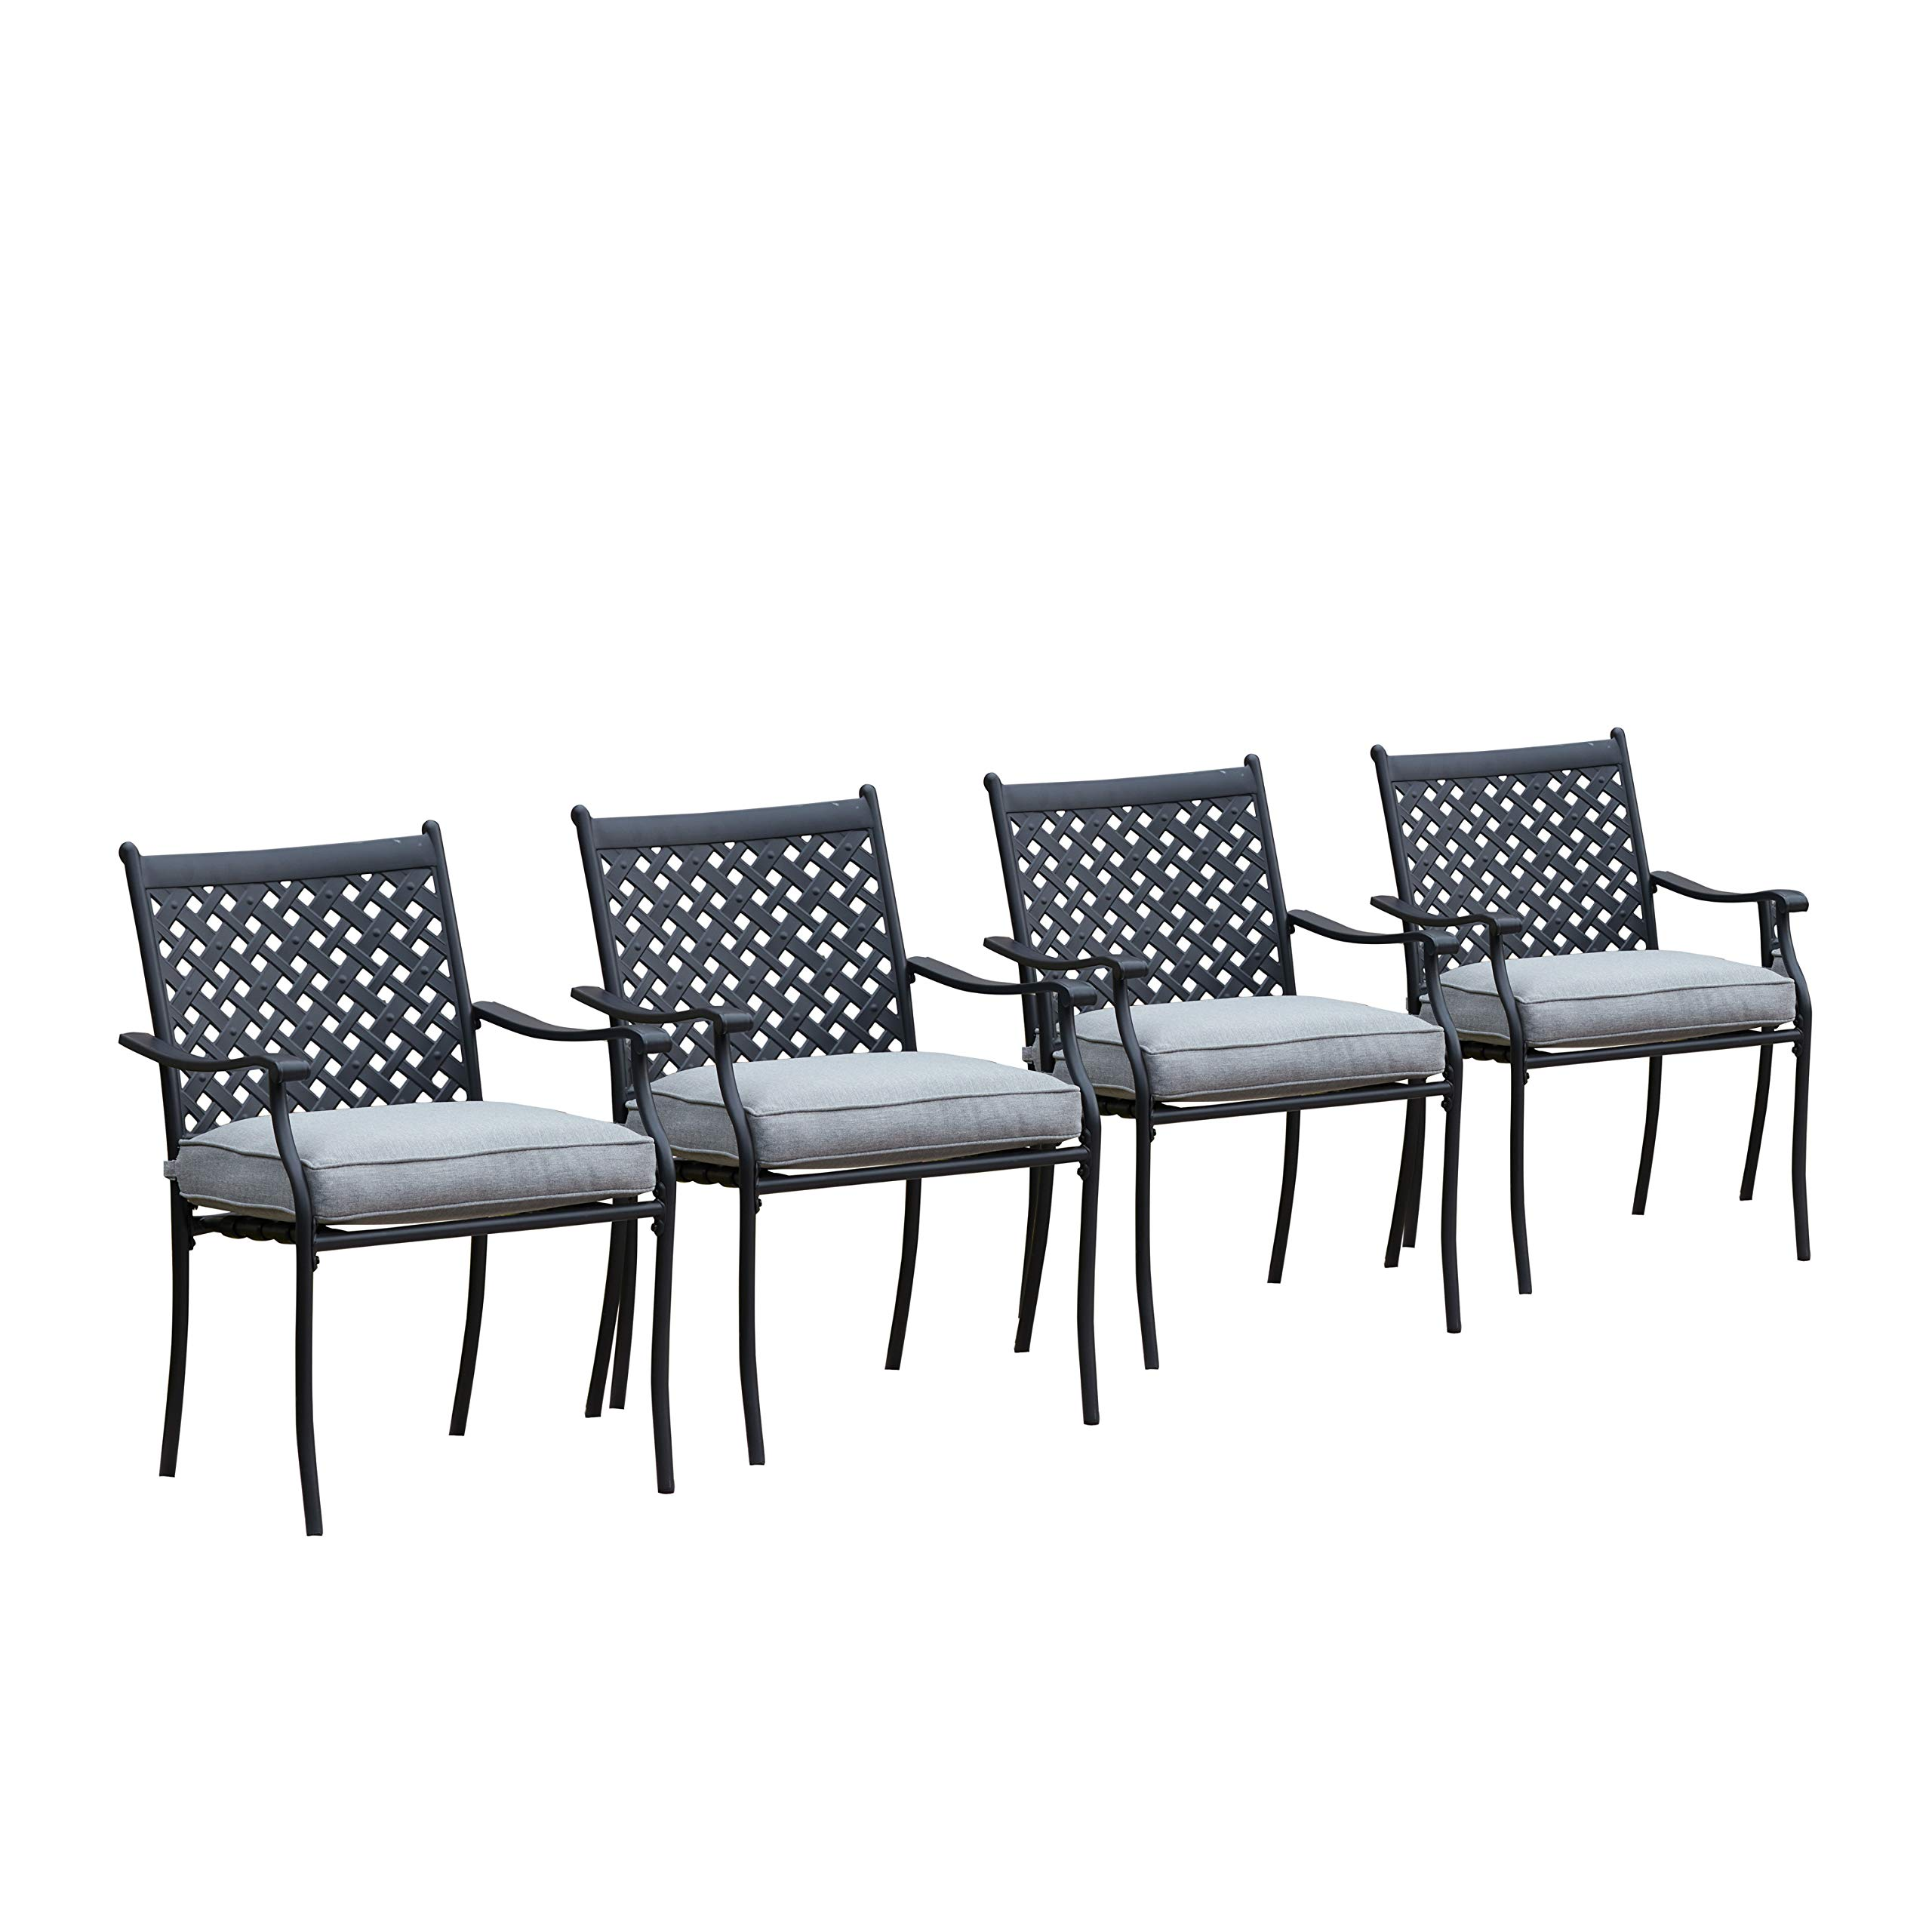 LOKATSE HOME 4 Piece Outdoor Patio Metal Wrought Iron Dining Chair Set with Arms and Seat Cushions - Grey